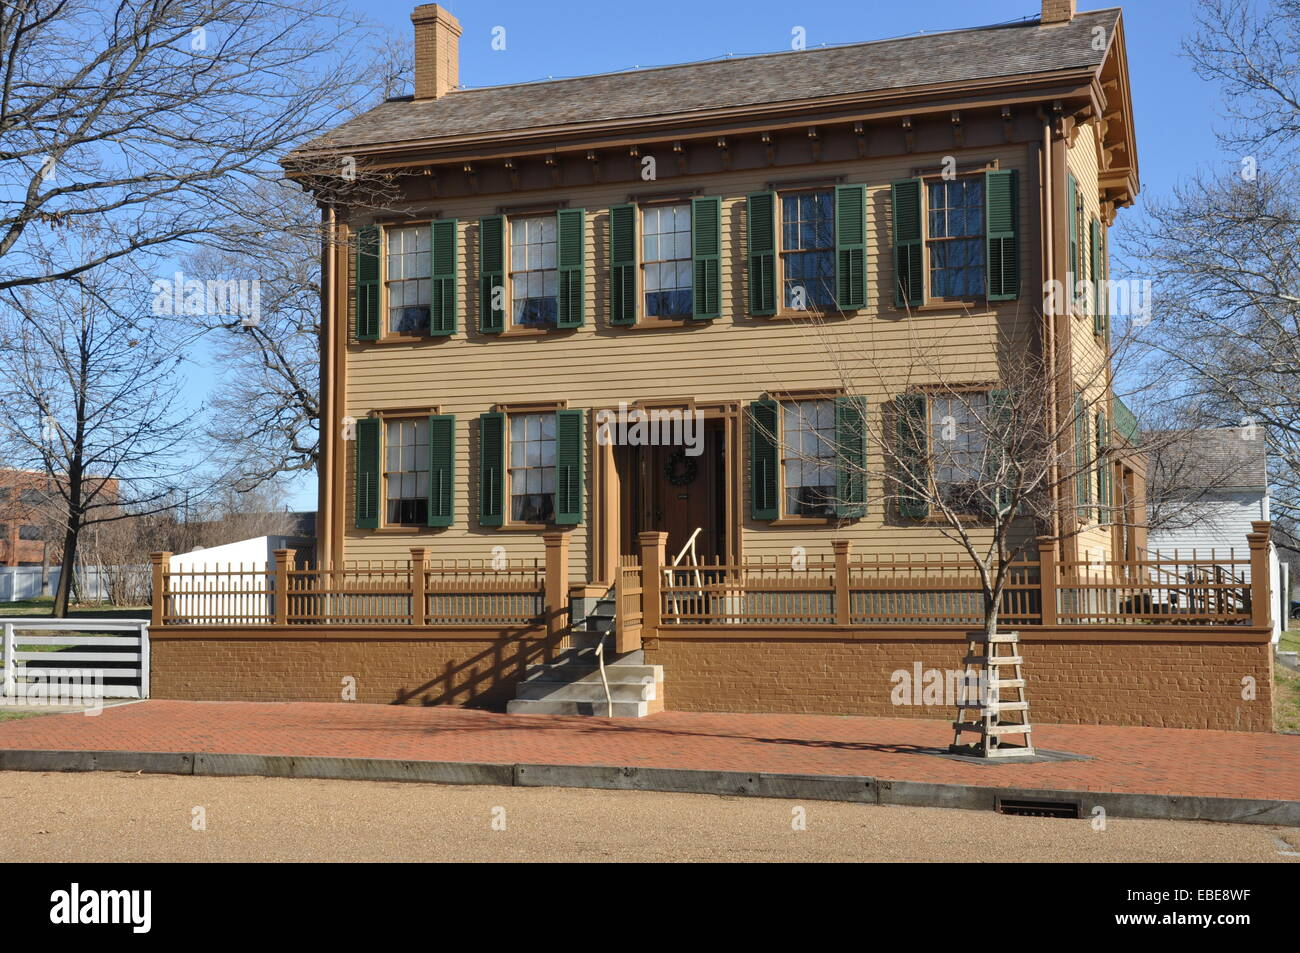 Abraham Lincoln's home in Springfield Illinois. - Stock Image